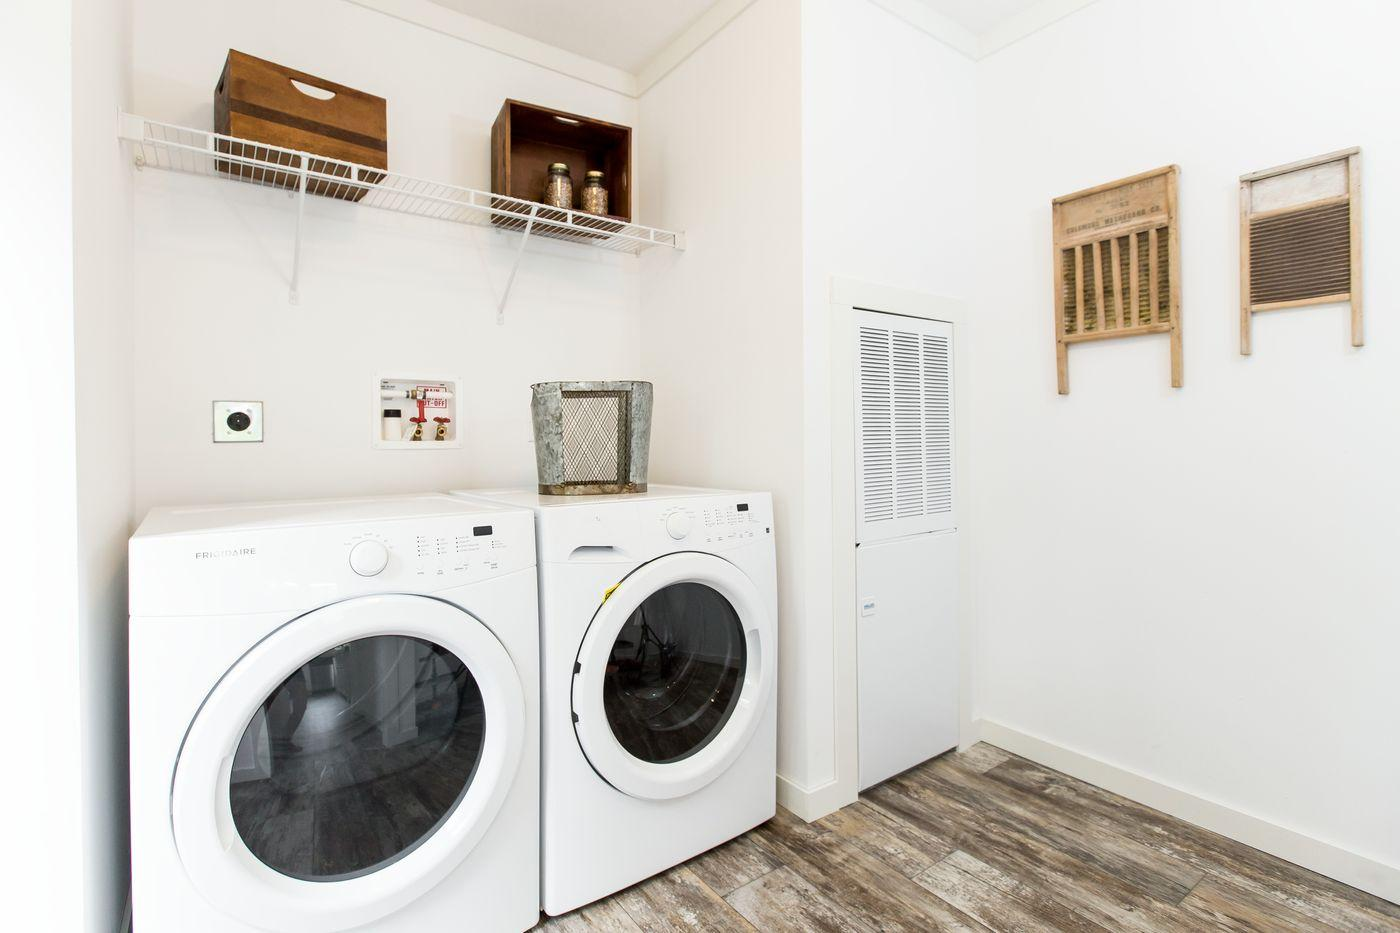 The Lulabelle Laundry Room